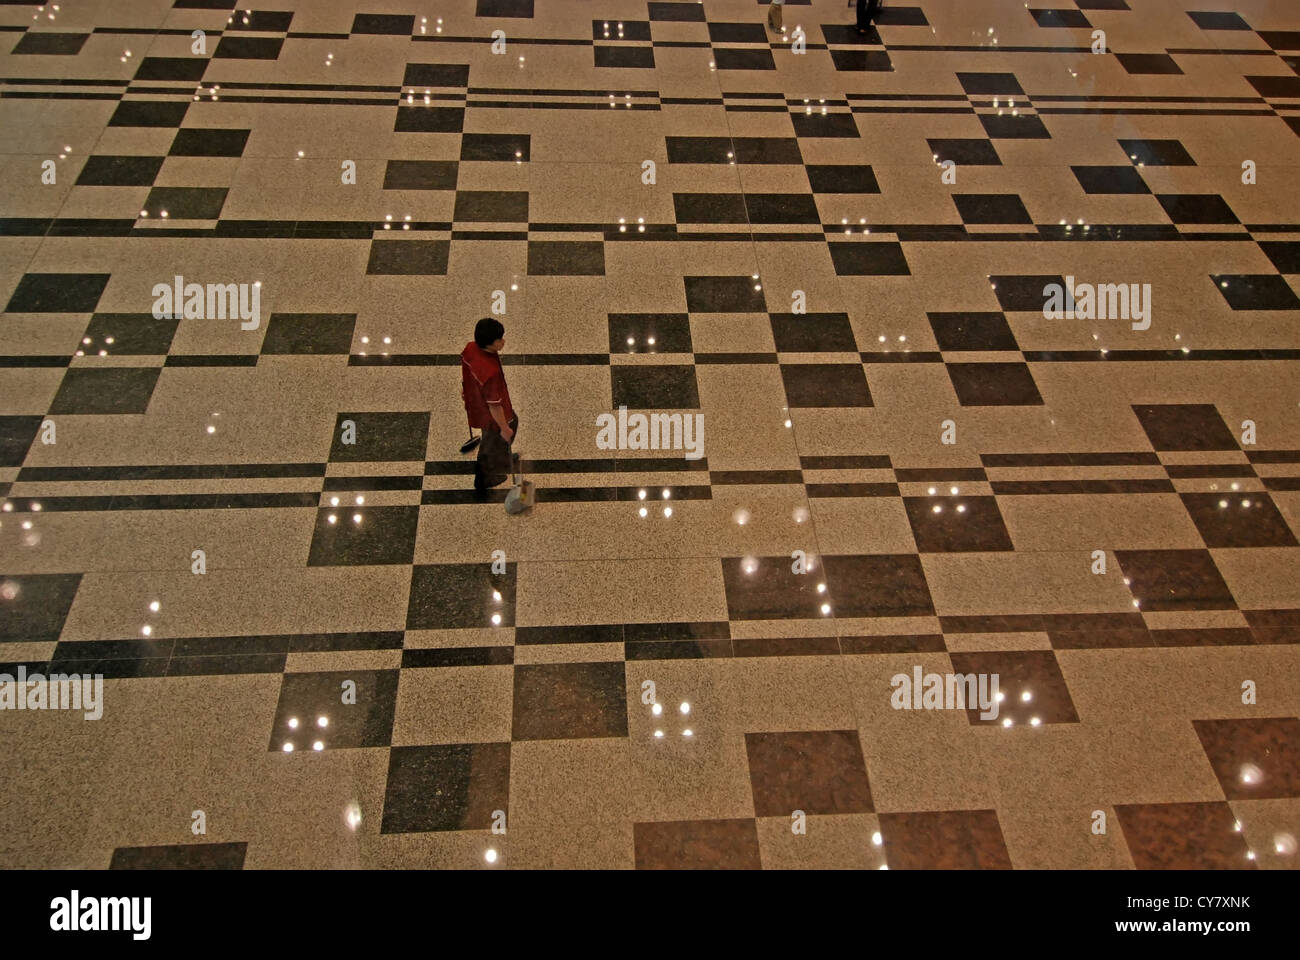 shinning floor in the exhibition hall - Stock Image